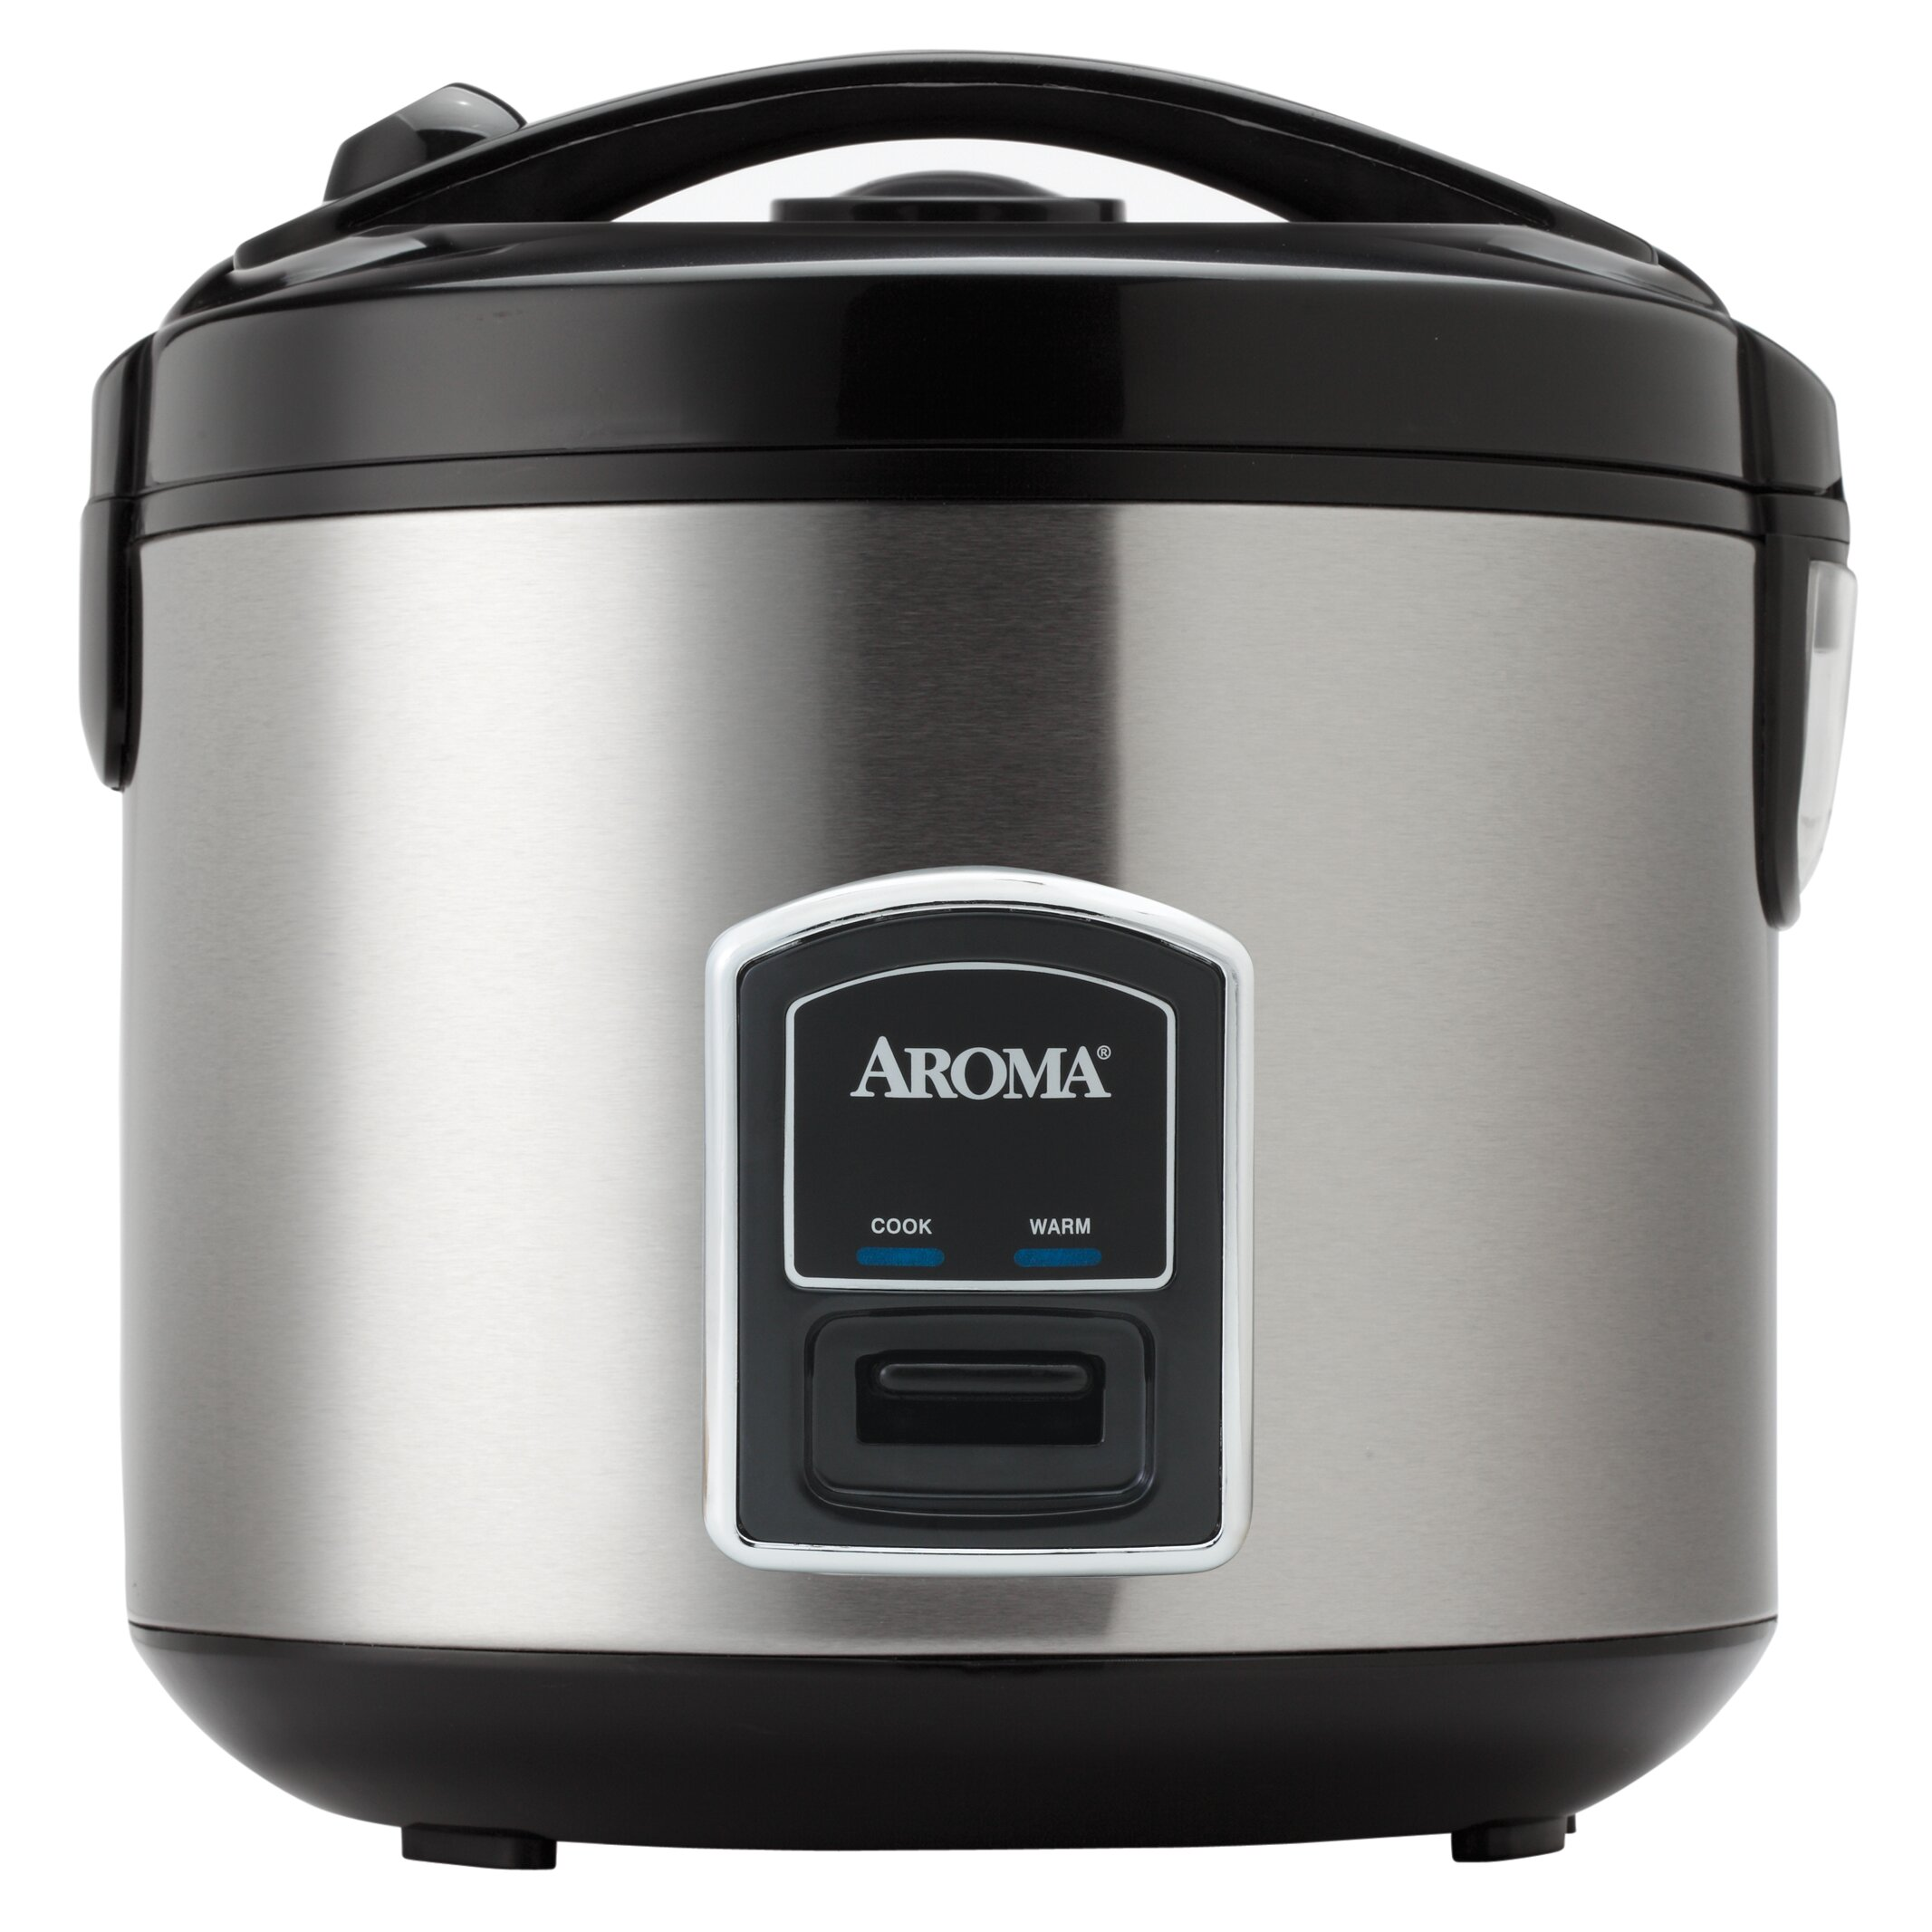 Aroma  Cup Rice Cooker And Food Steamer Reviews